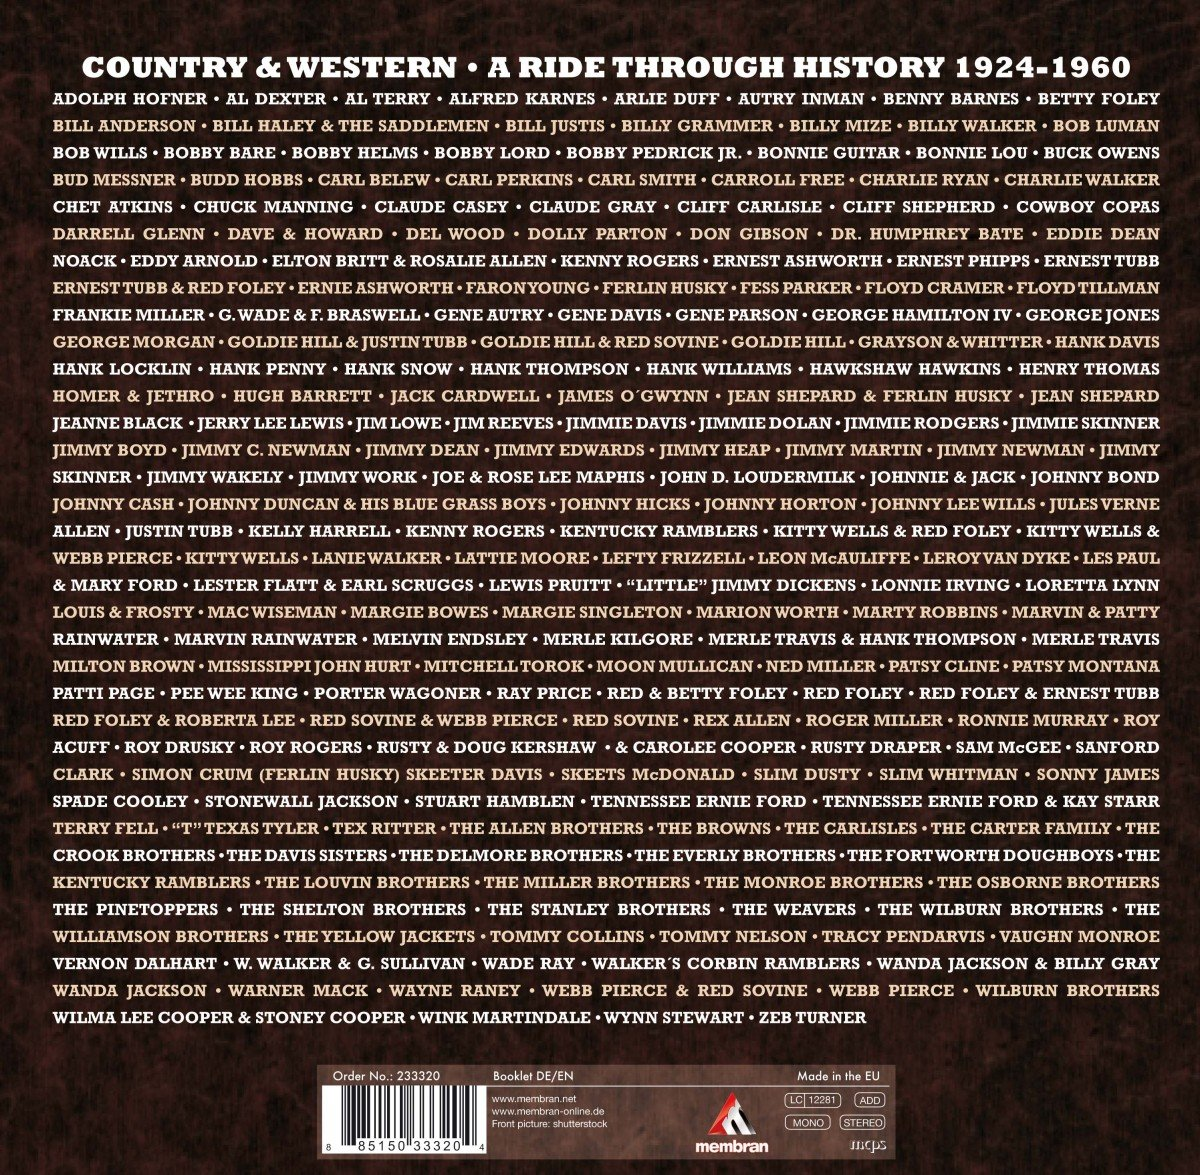 Country & Western - a ride through History 1924-1960: Amazon.de: Musik